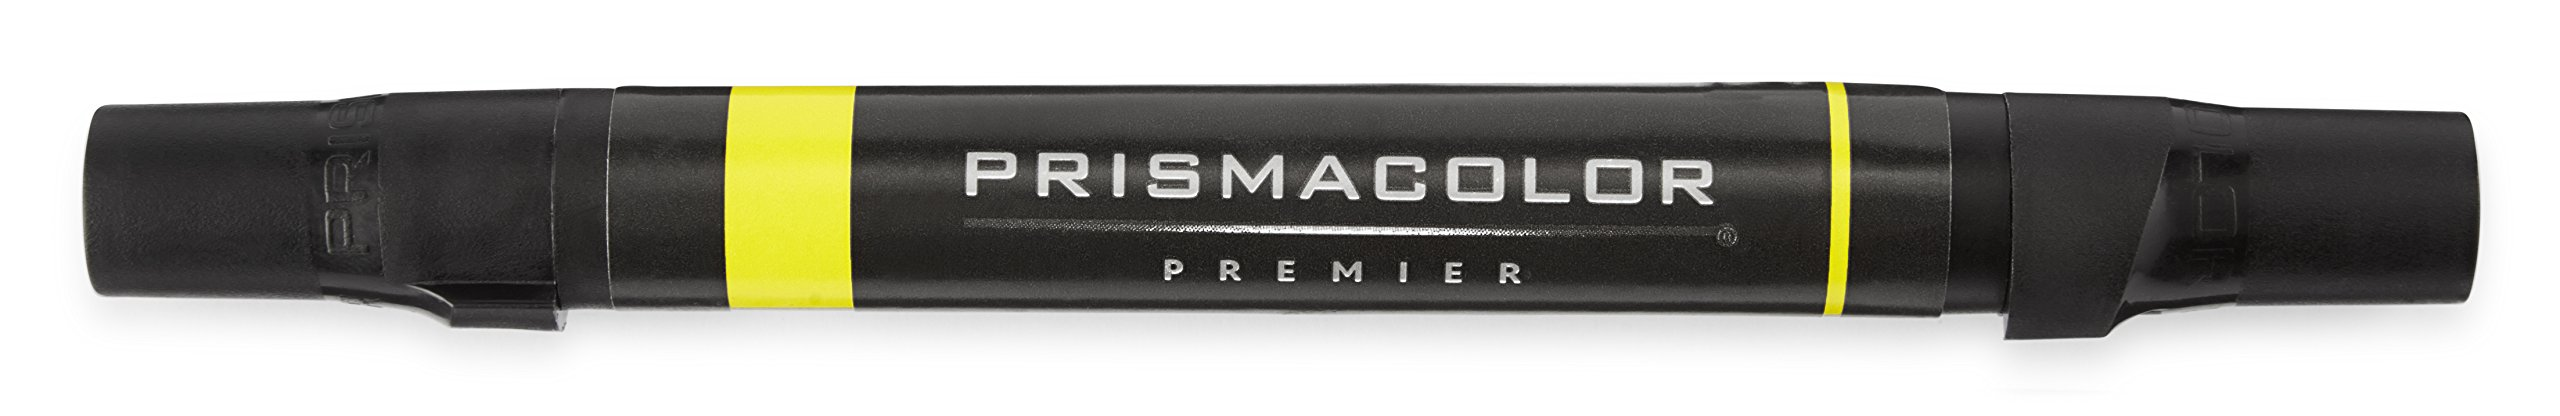 Prismacolor Premier Double-Ended Art Markers, Fine and Chisel Tip, 48-Count by Prismacolor (Image #13)